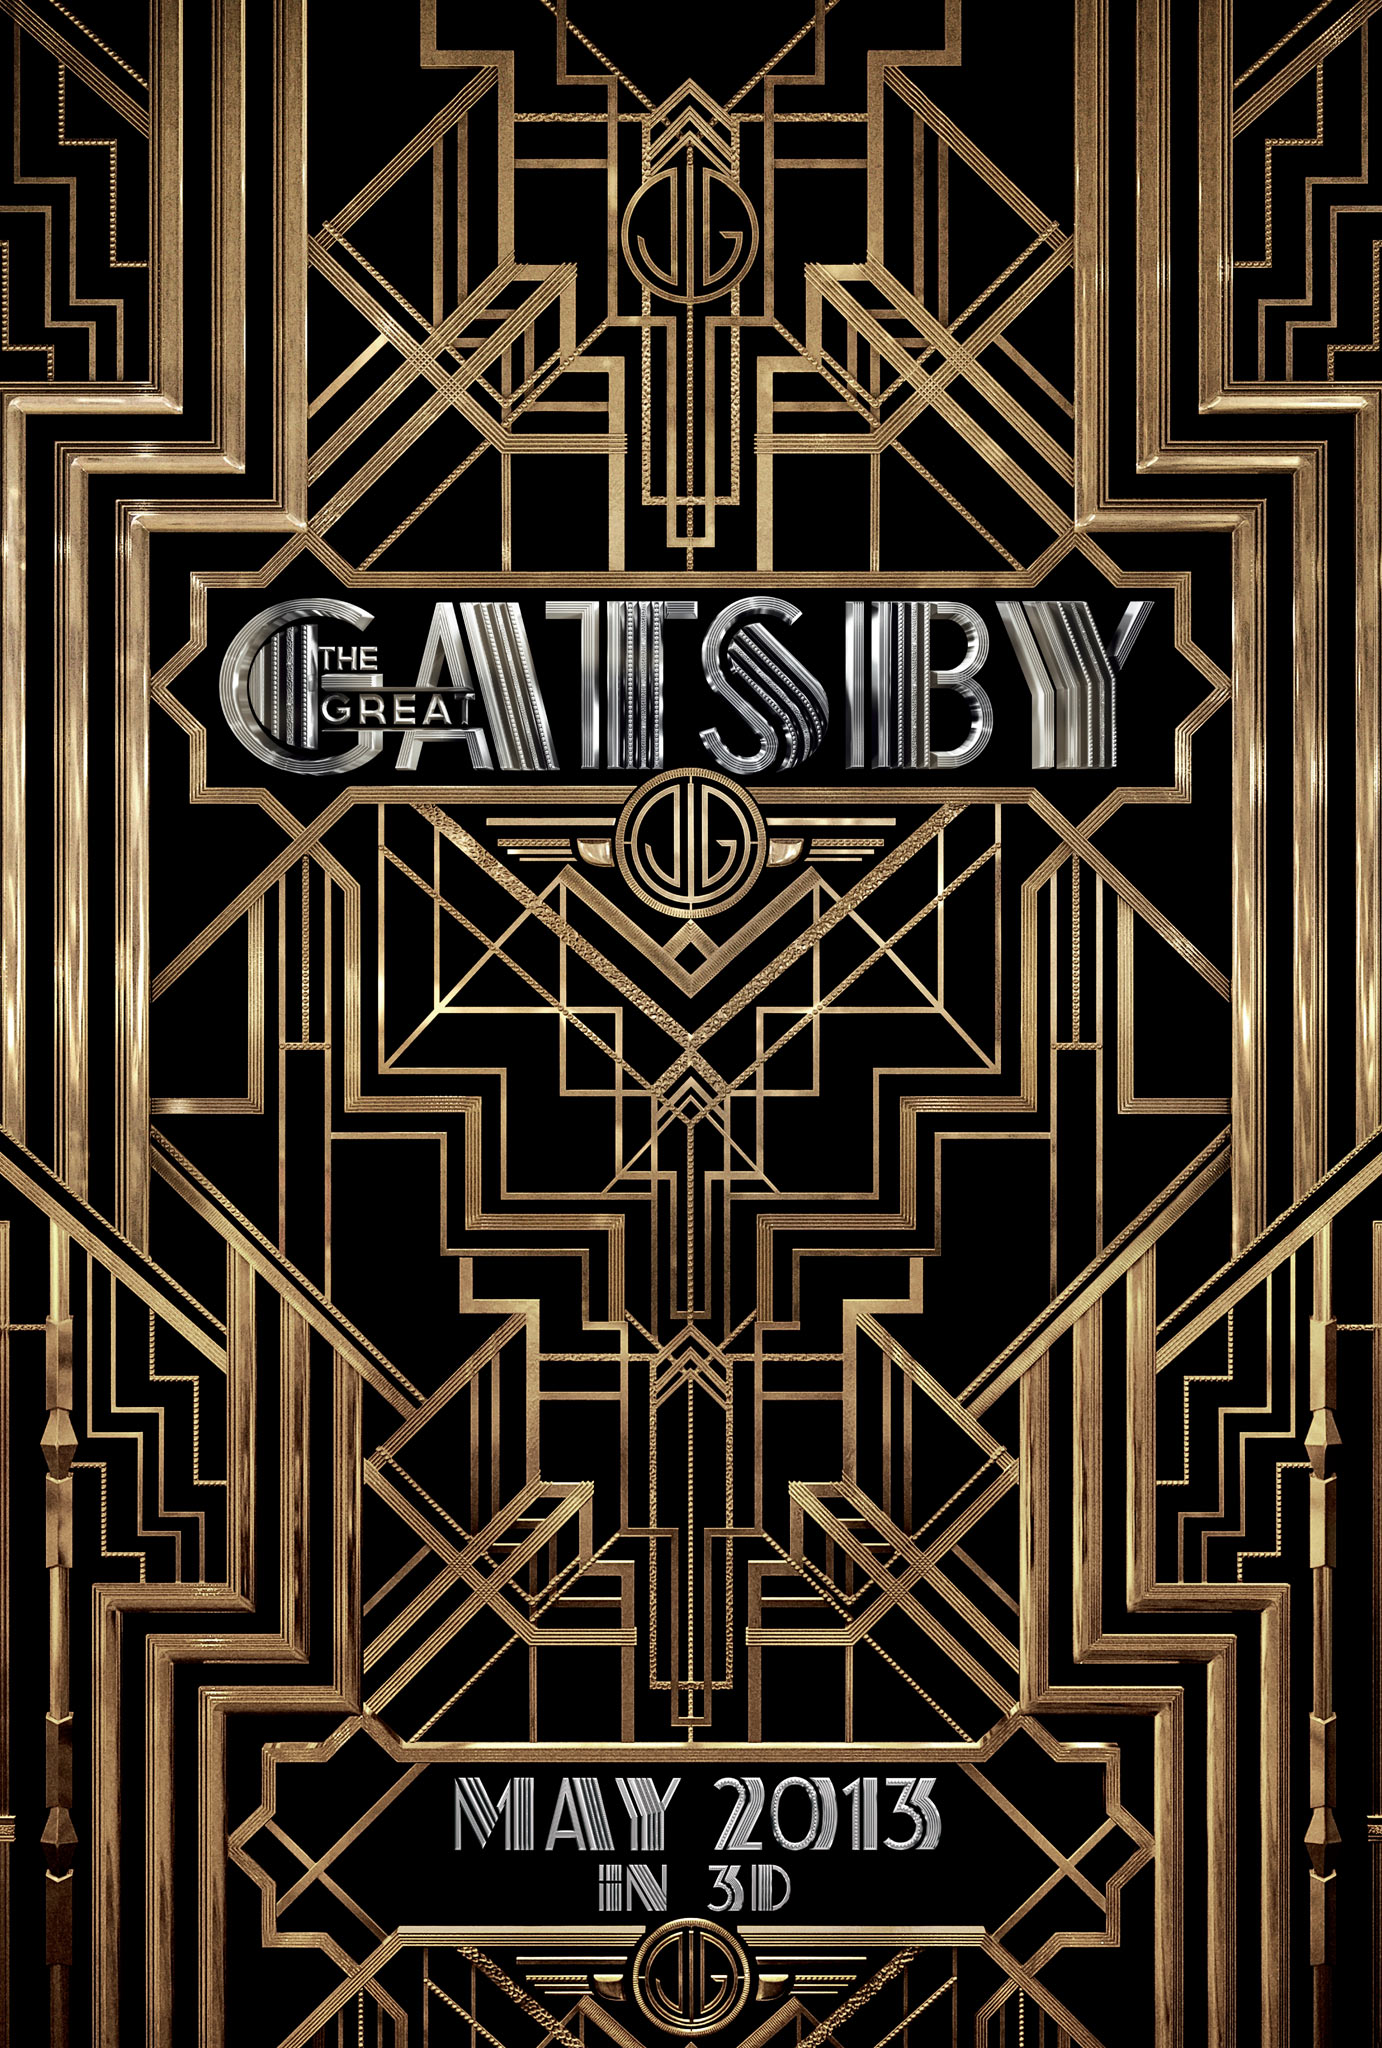 301 Moved Permanently The Great Gatsby 2013 Poster